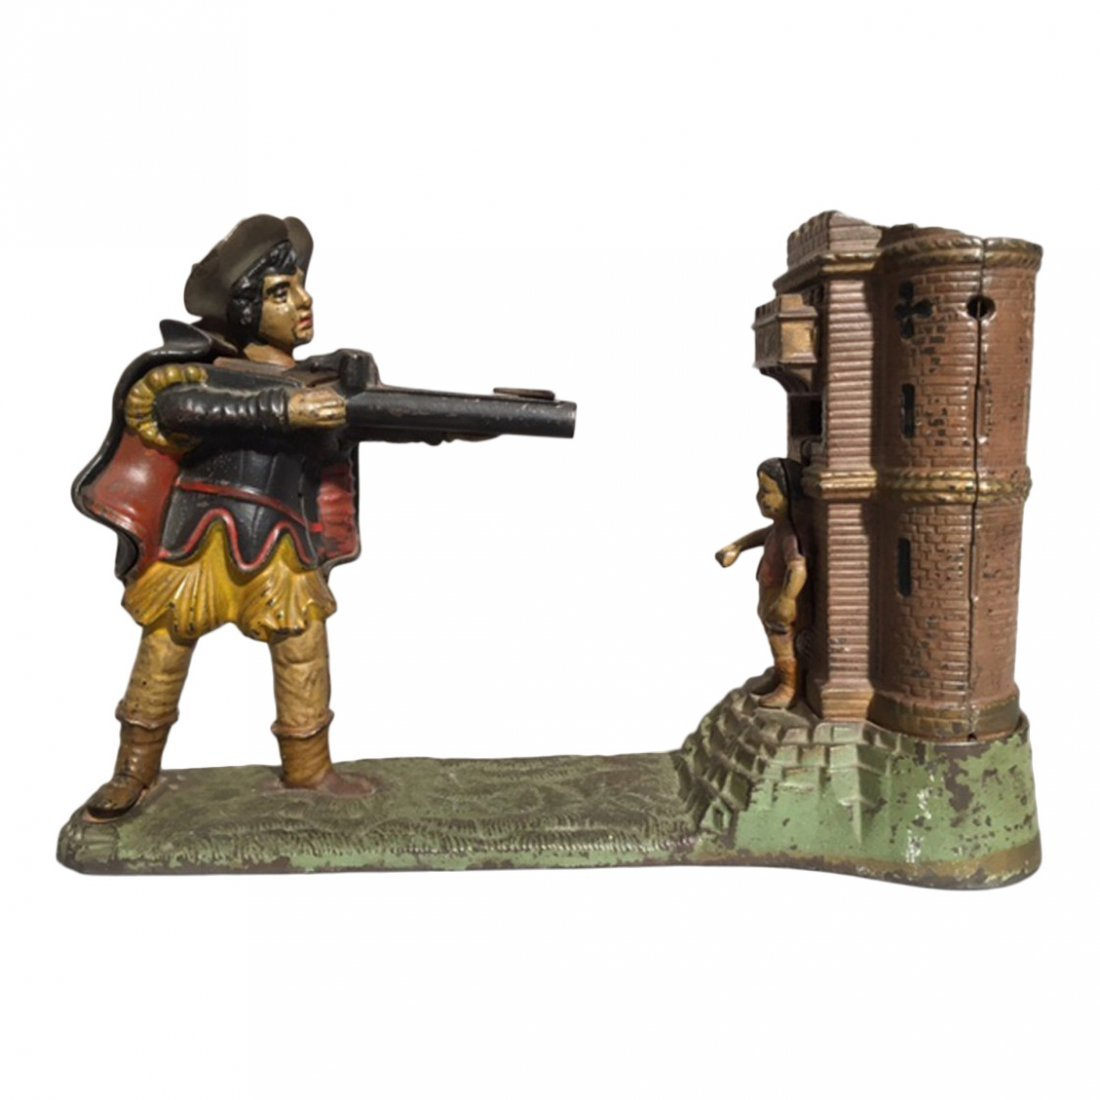 Cast Iron Rifleman Mechanical Bank, 1896